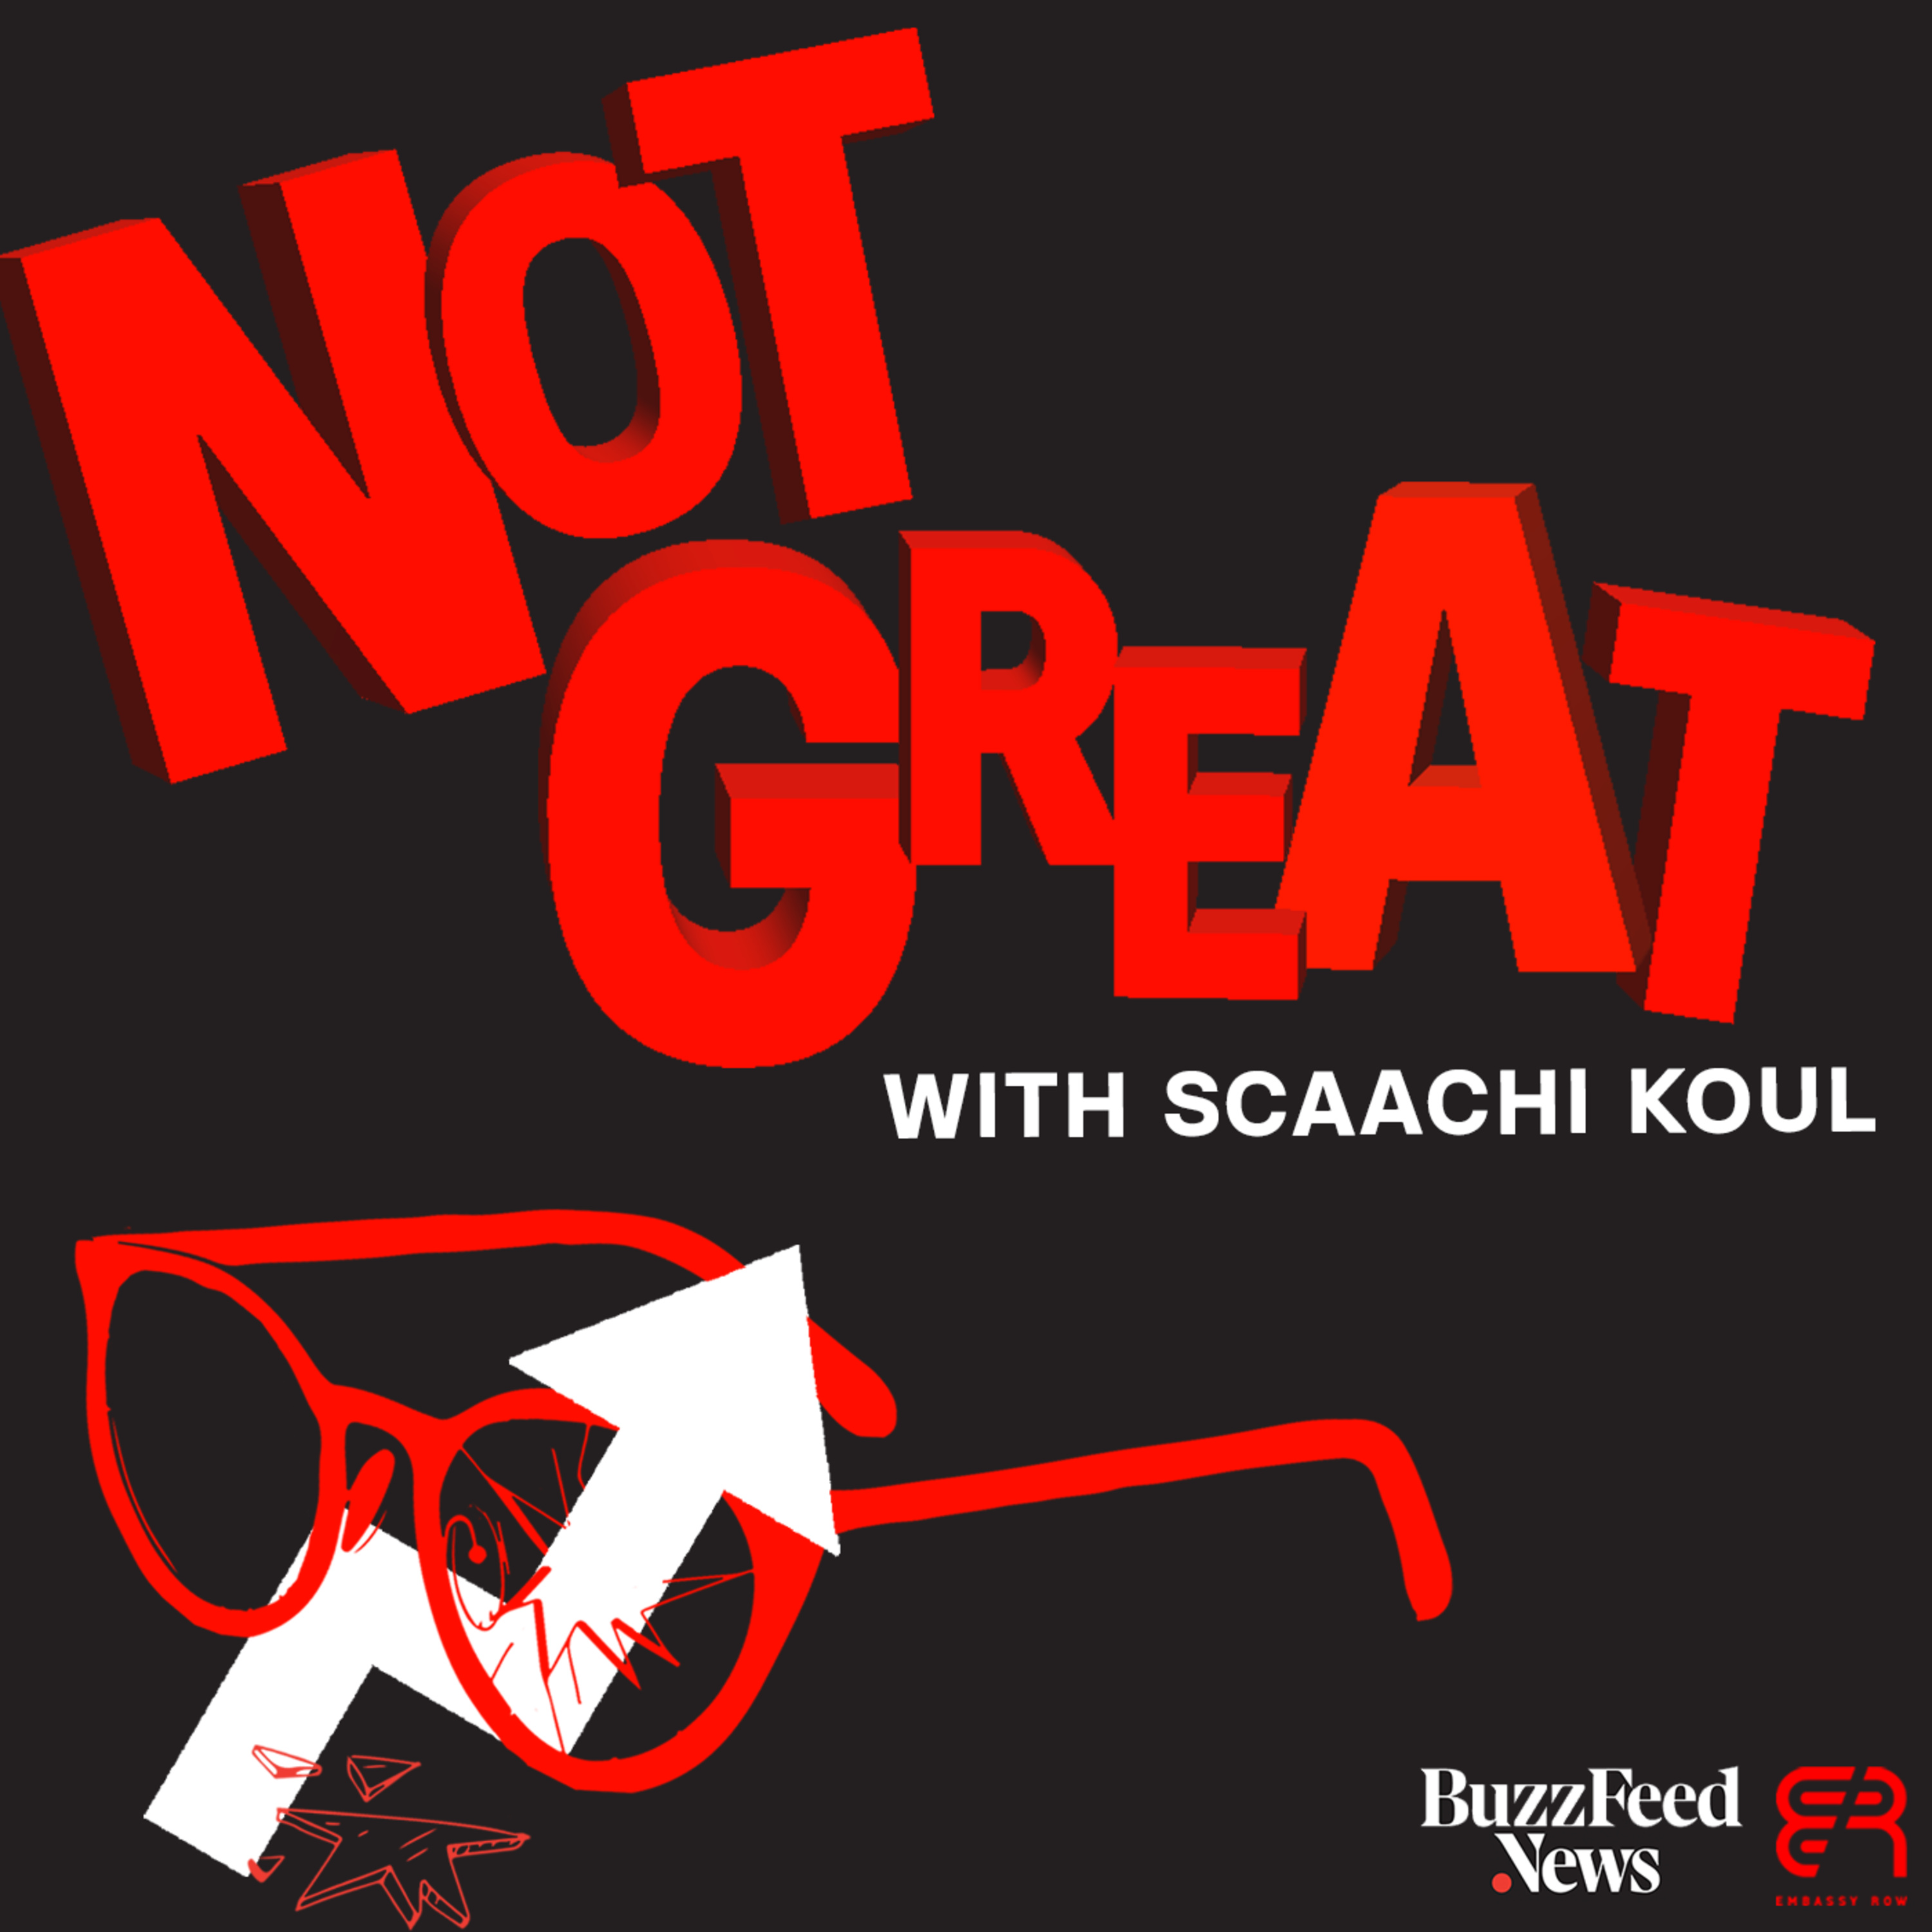 """Intro: """"Not Great With Scaachi Koul"""""""